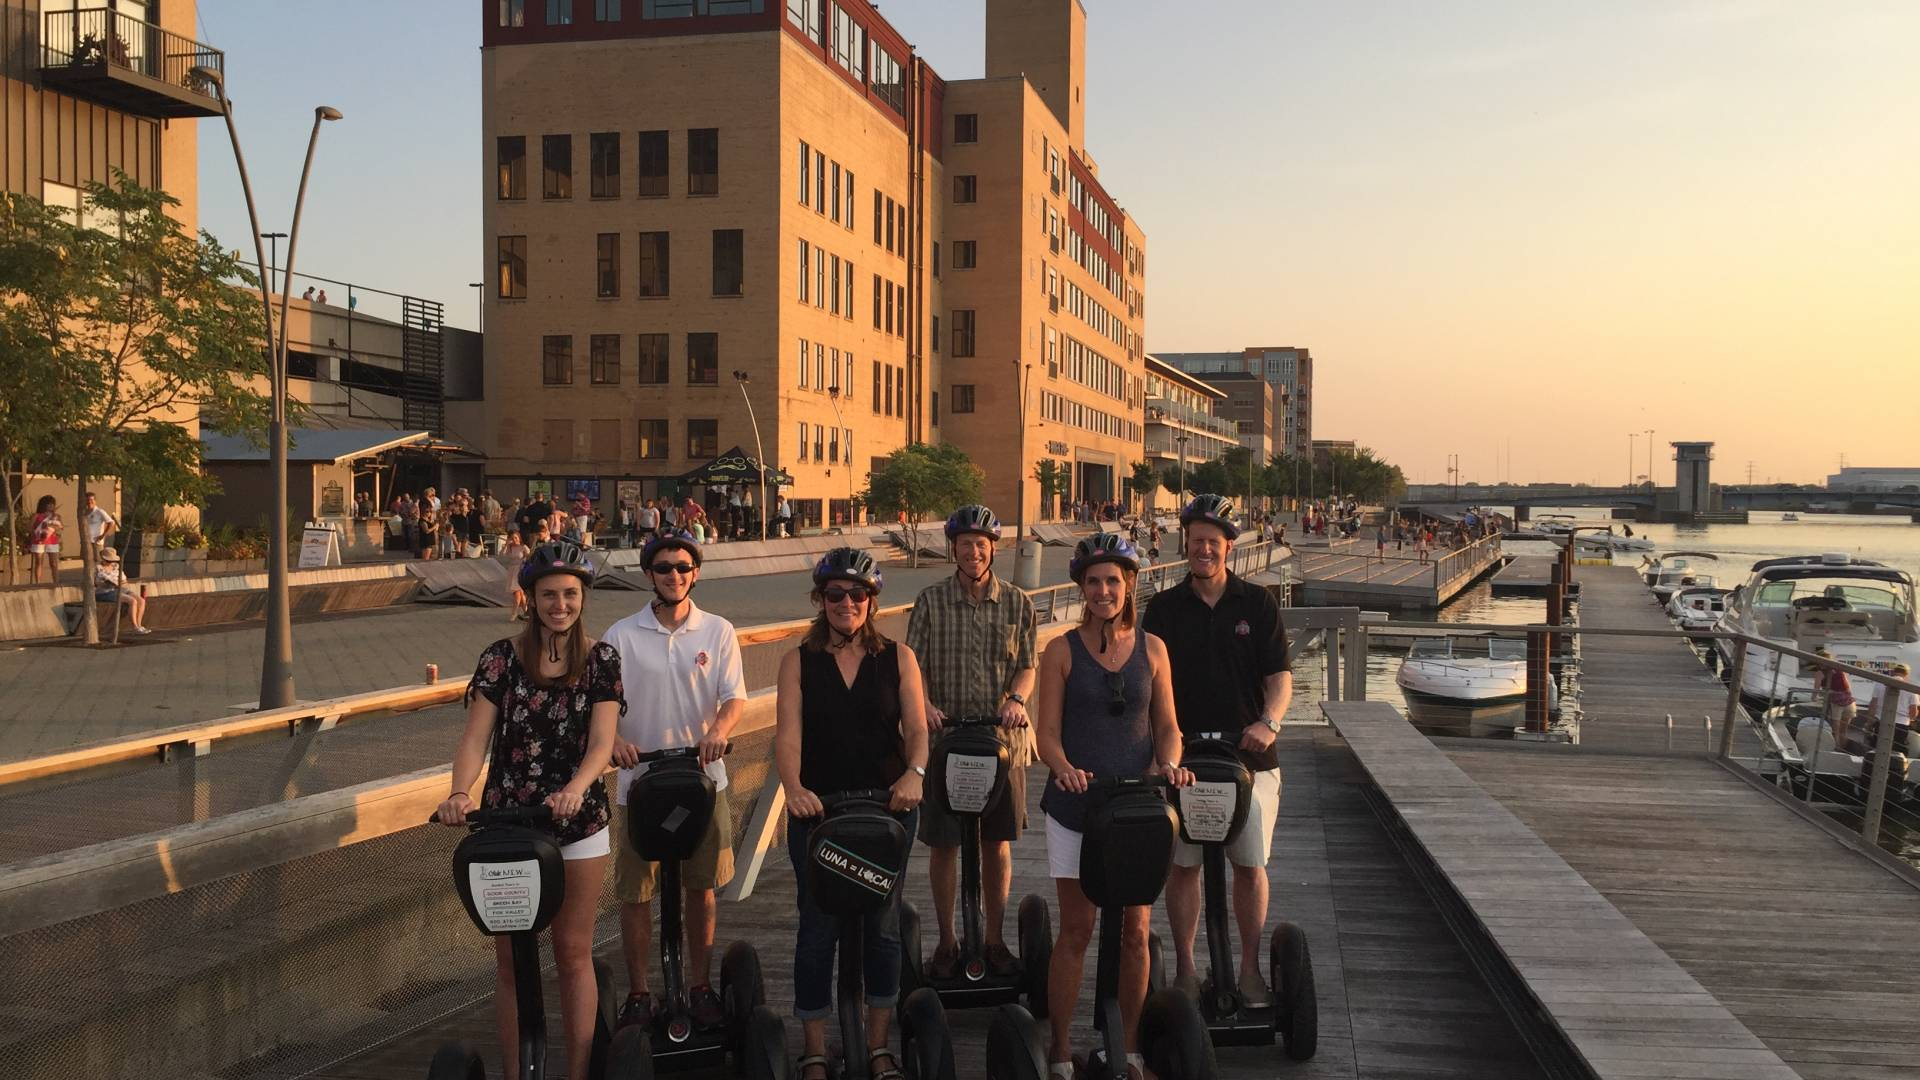 Explore Downtown Green Bay and other areas of our community from a different perspective - aboard your own segway.